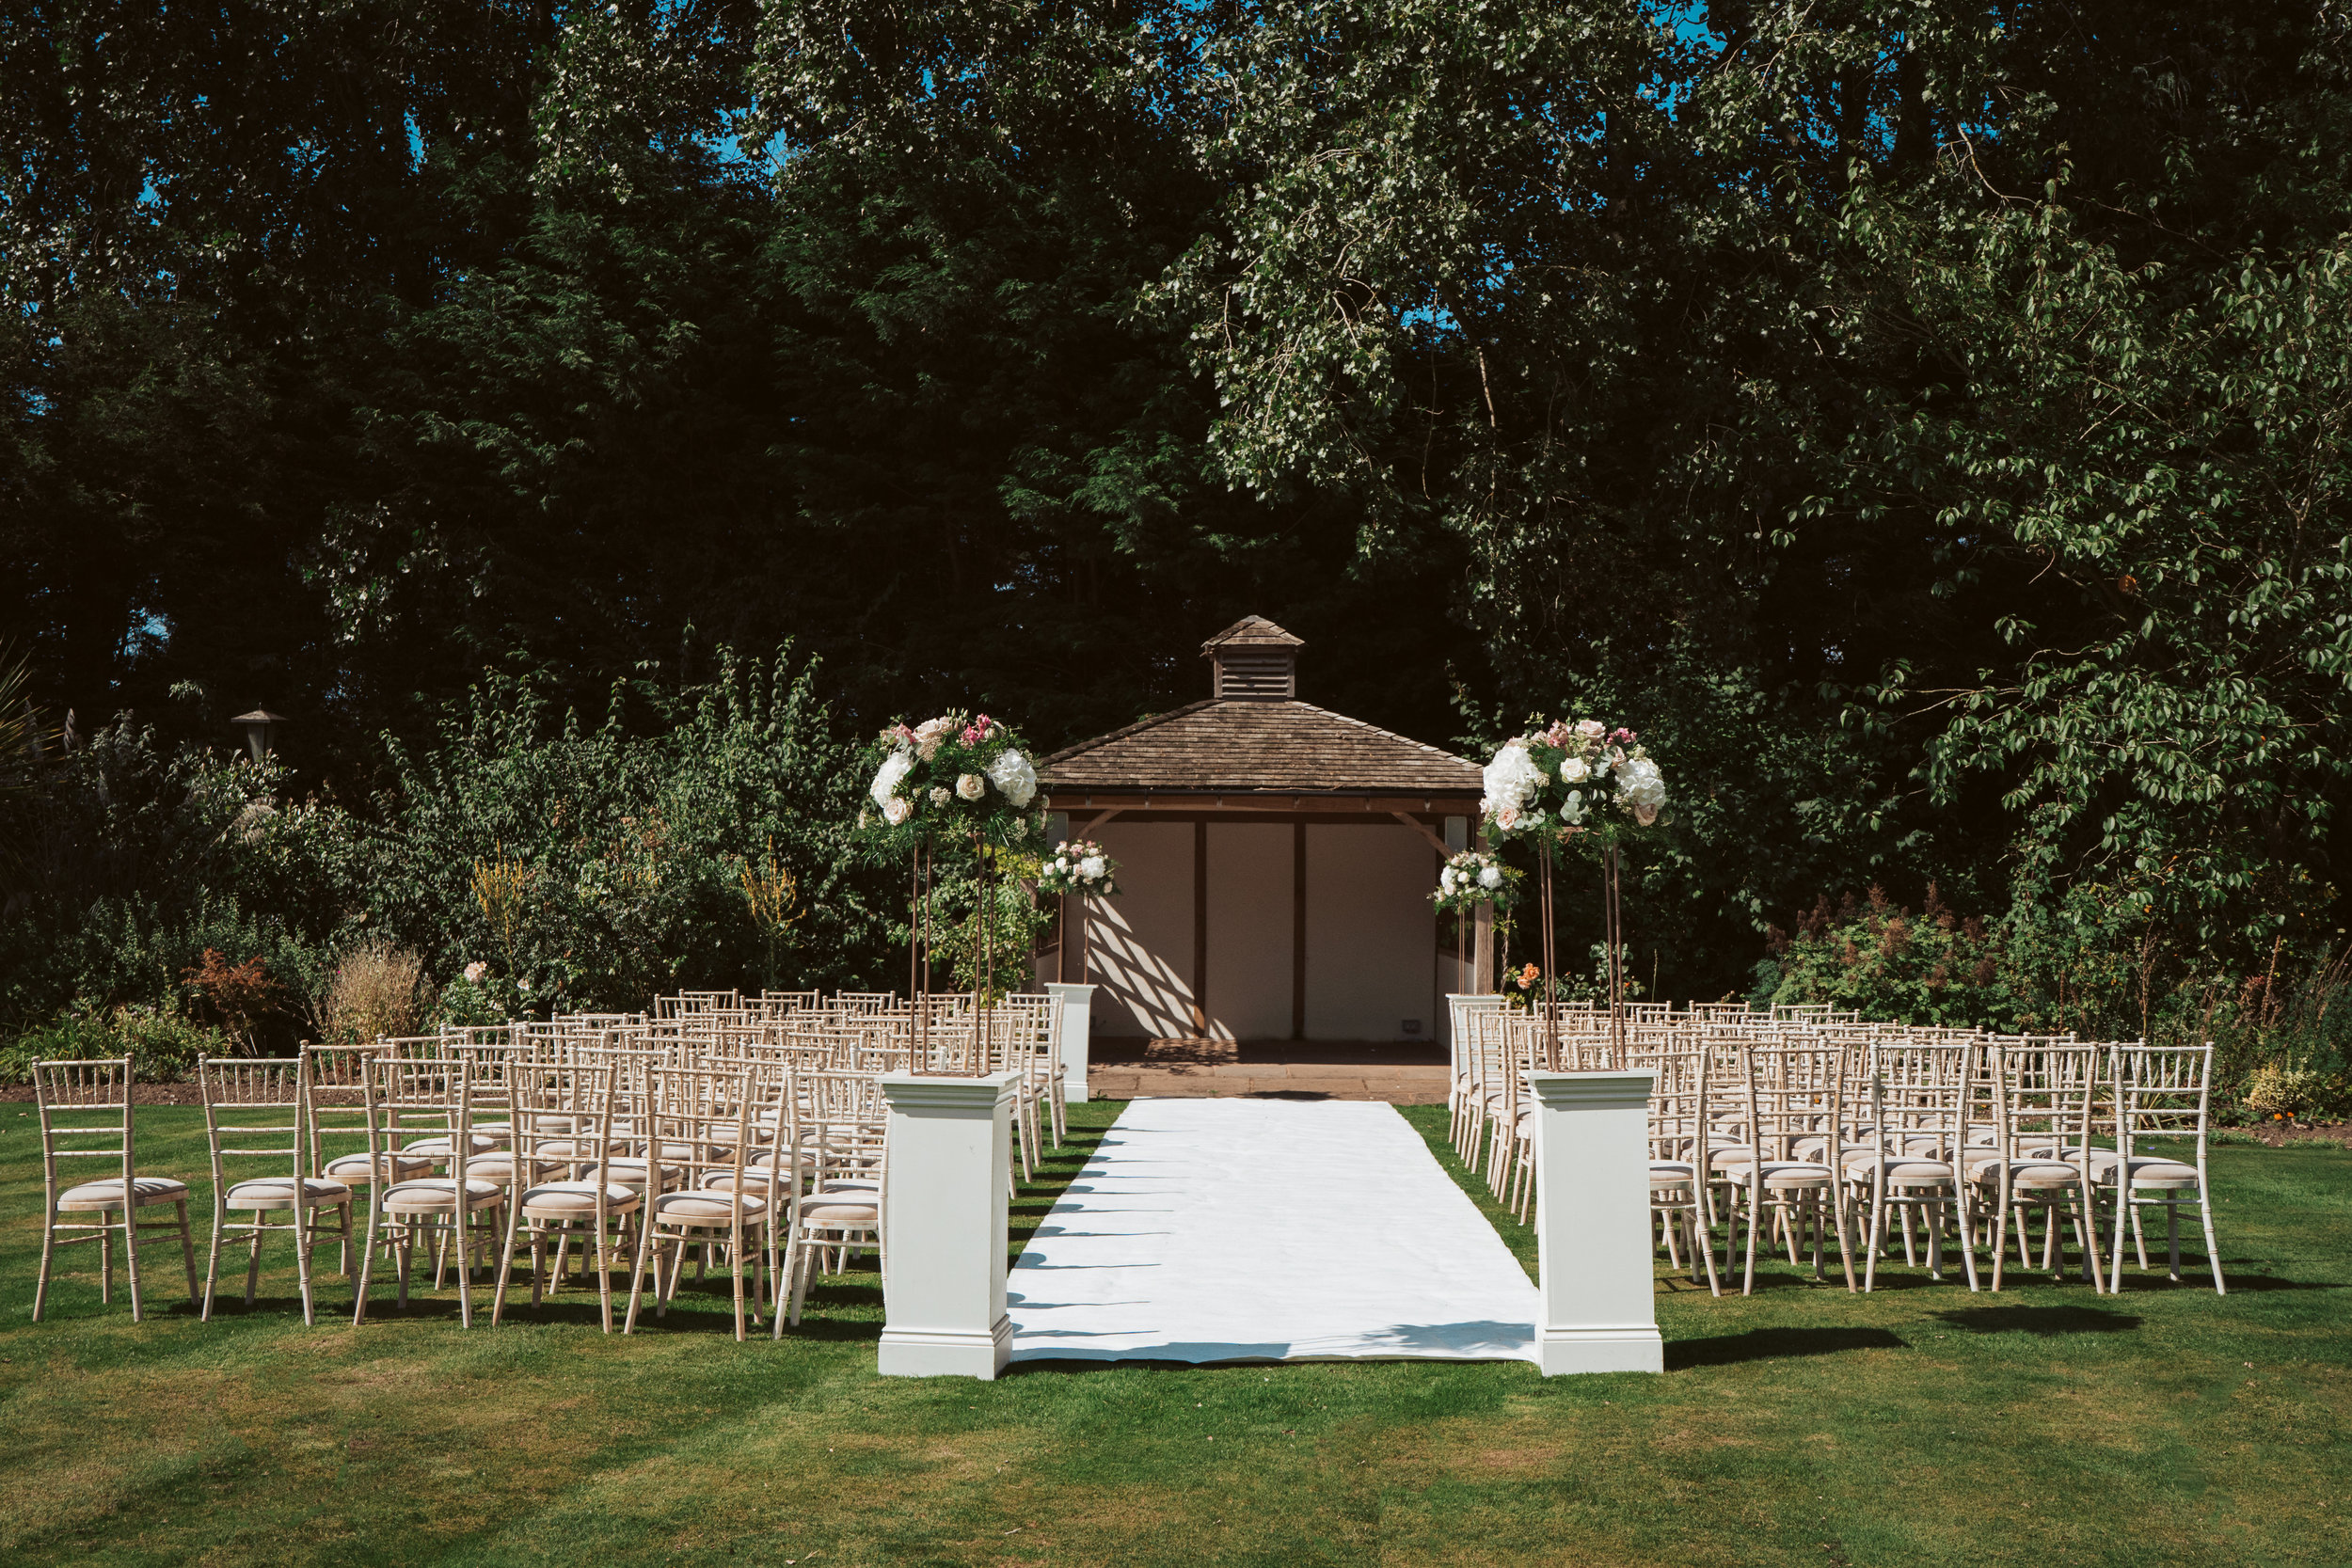 The Rose Pagoda - Our romantic Rose Pagoda enjoys an idyllic outdoor setting in the private secluded grounds, a memorable place under which to say your vows.